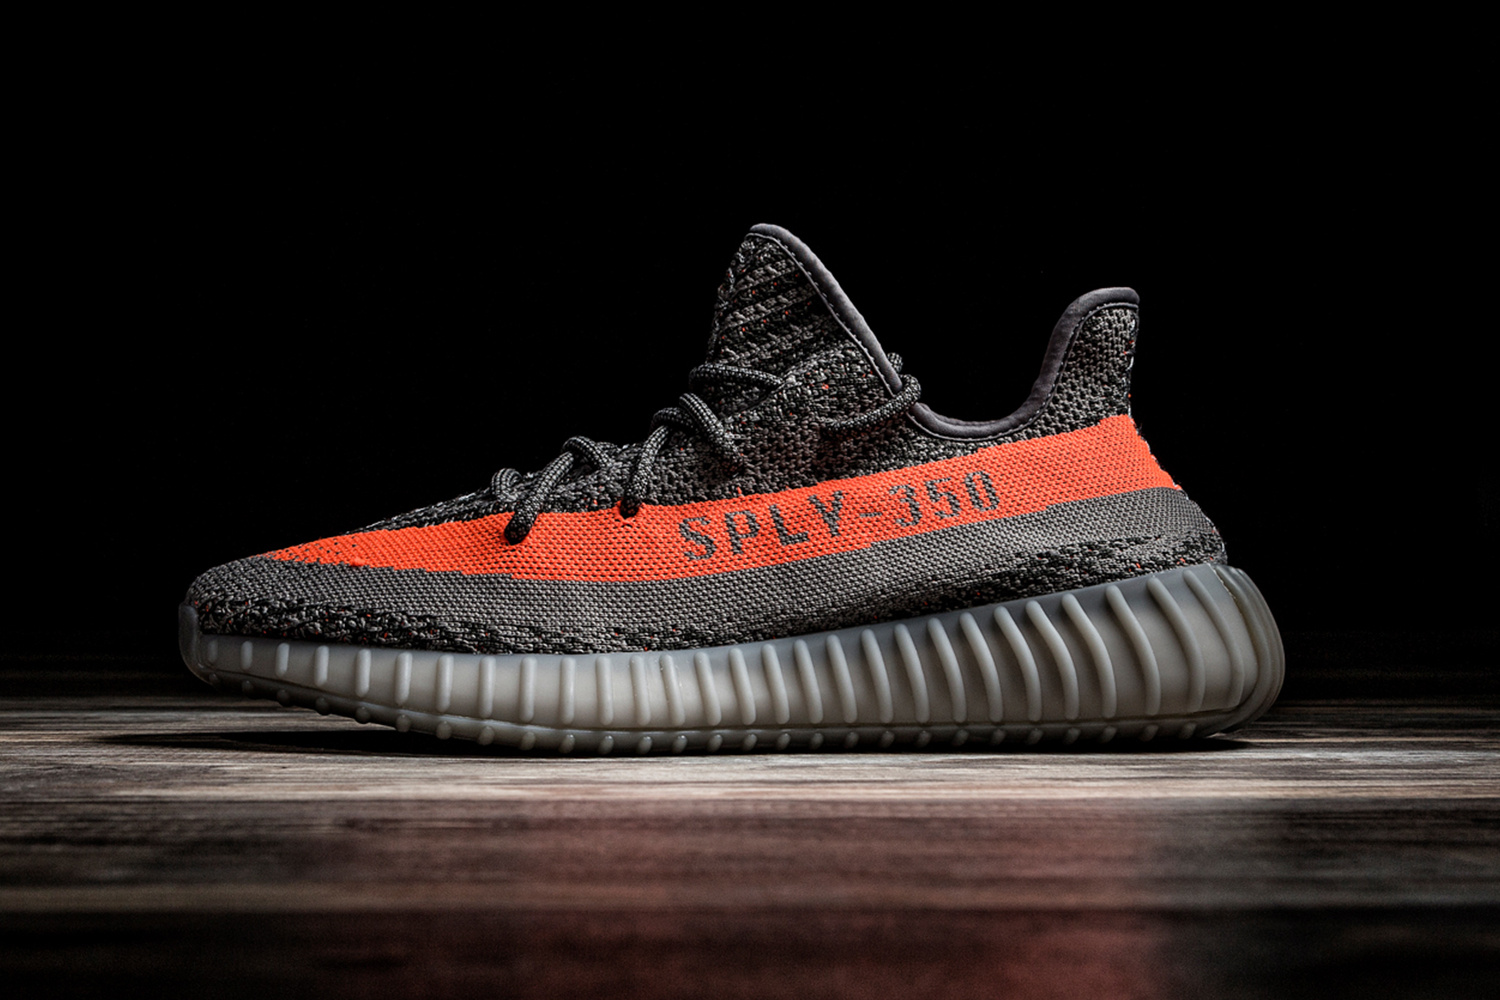 adidas Yeezy Boost 350 V2 (Black / White) BY1605 Cheap Sale